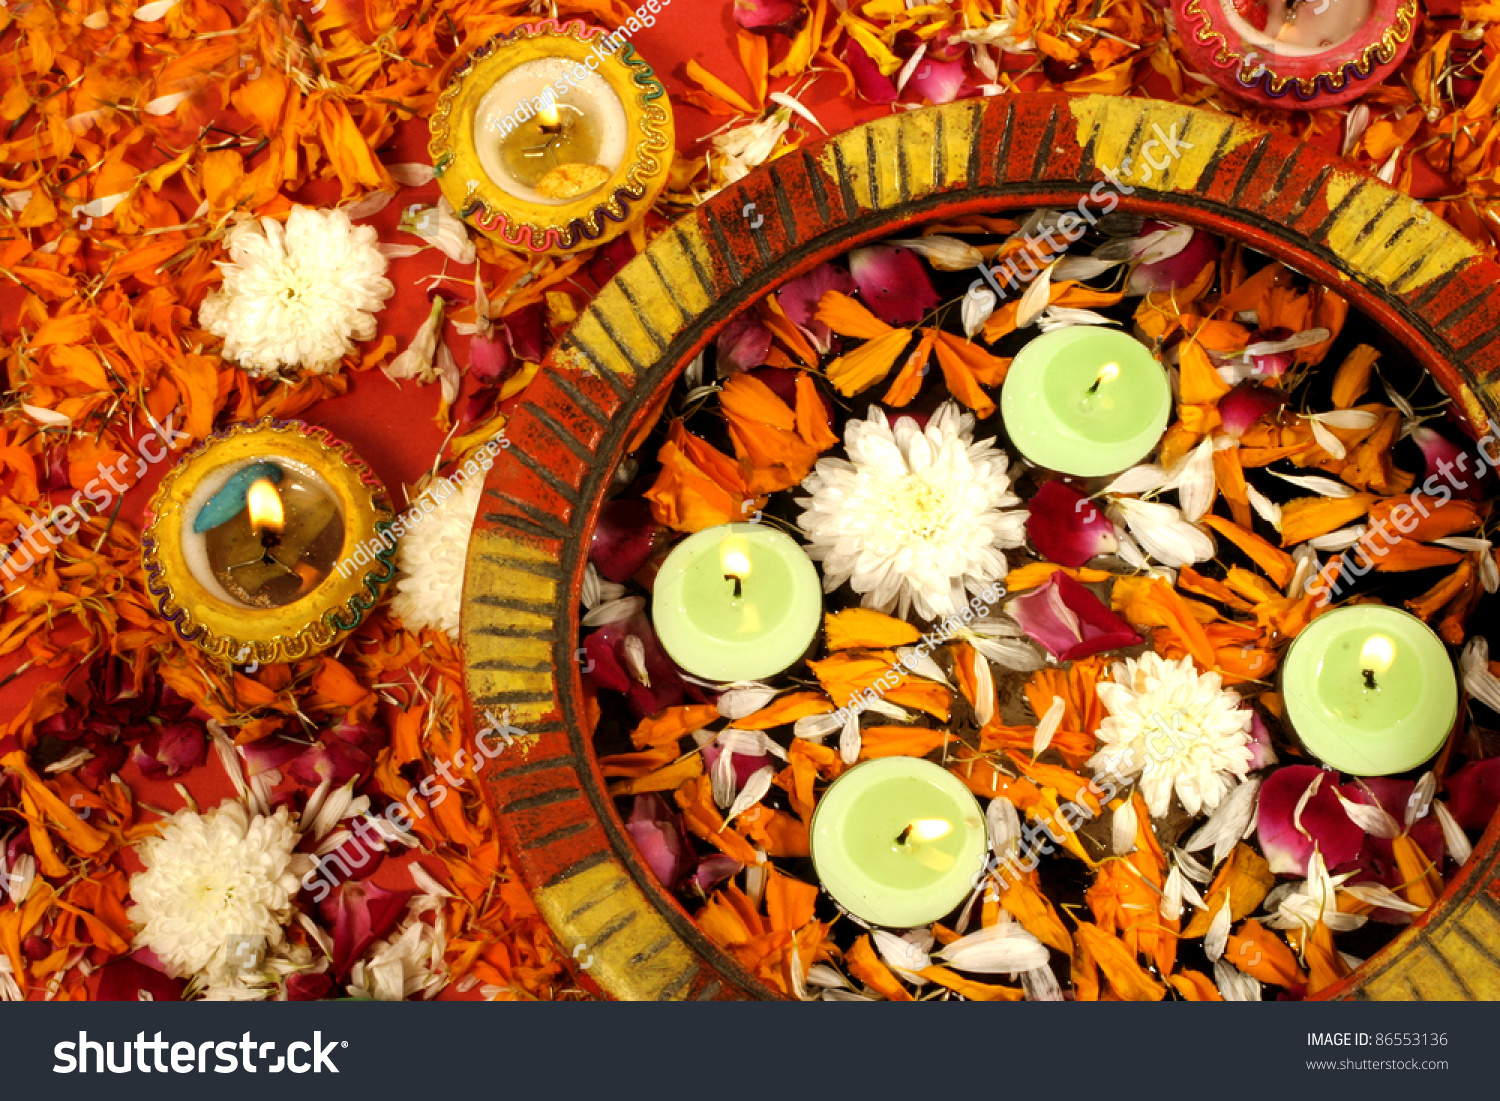 Indian Festival Decoration Diwali Decoration On Traditional Indian Festival Of Lights Stock